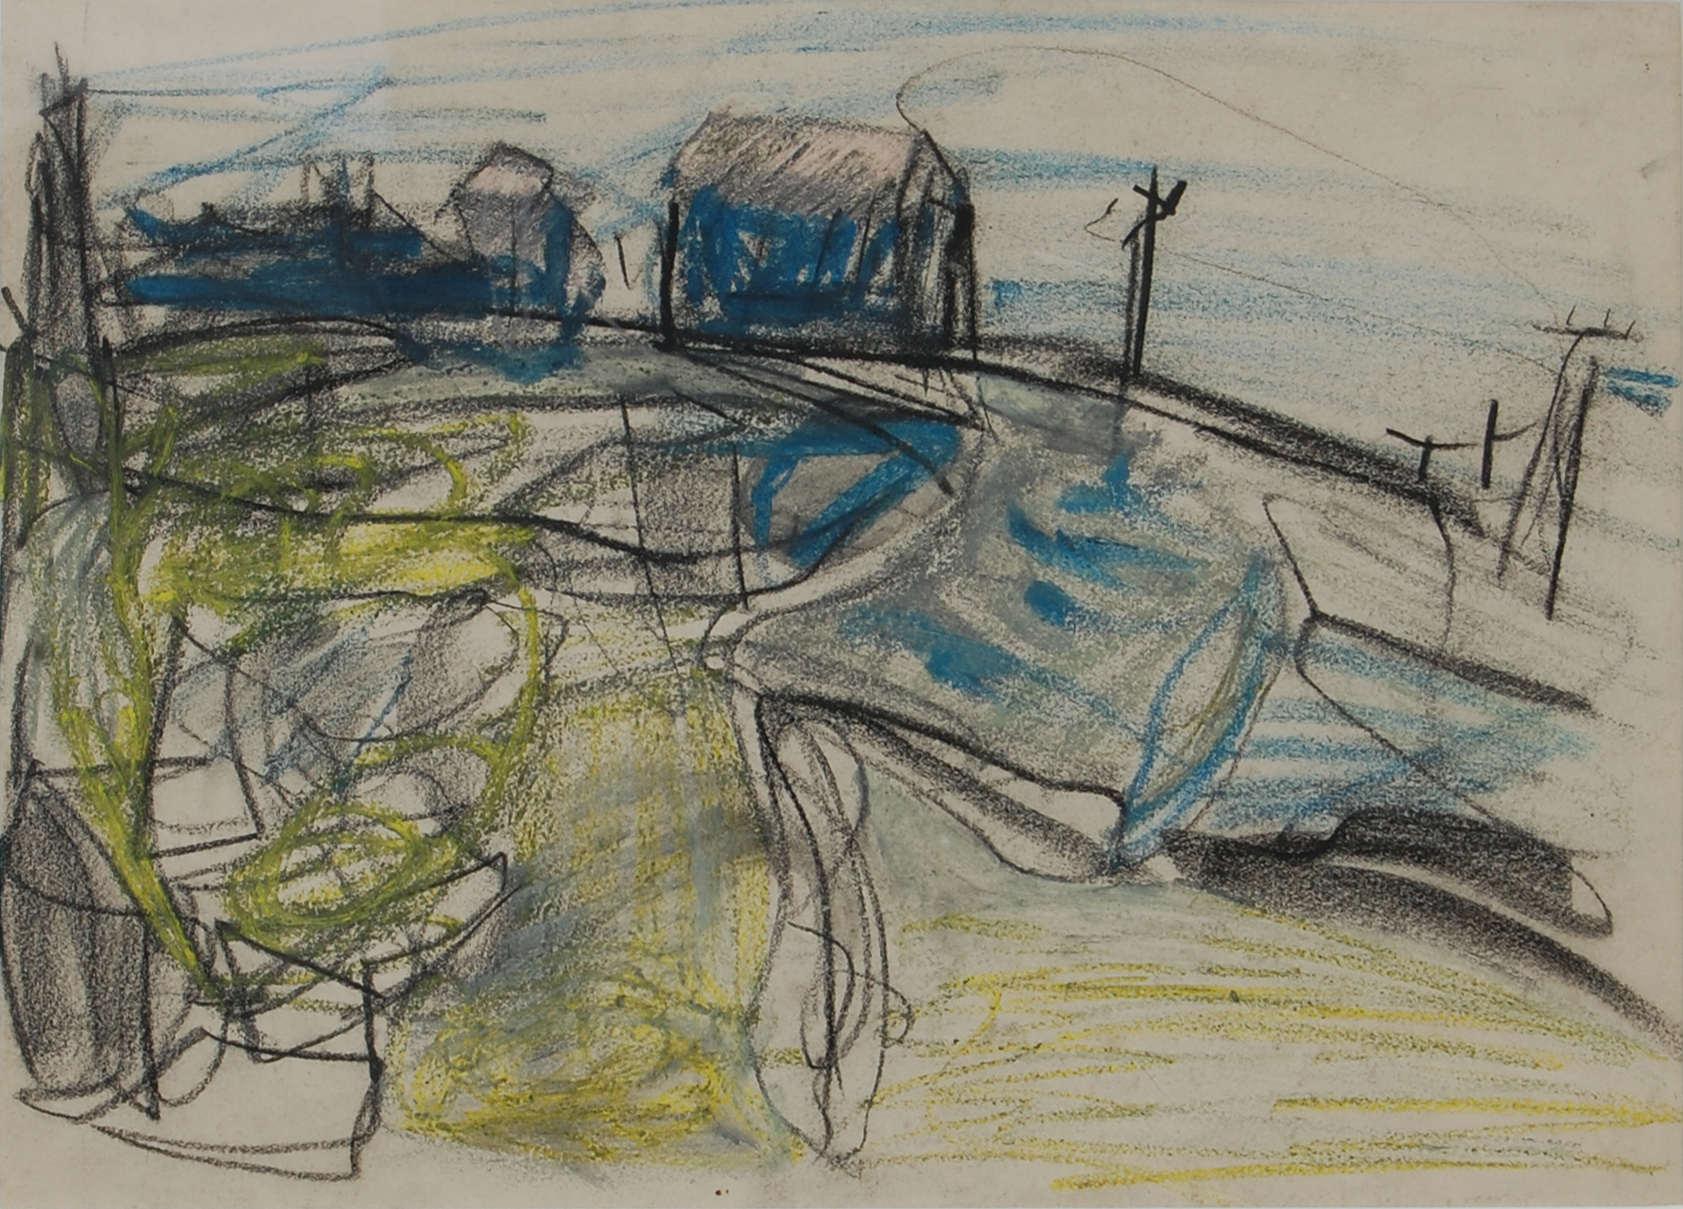 Peter Lanyon (1918 - 1964) ,  Study for St Just  (1952), Mixed media, 25.5 x 35.5cm